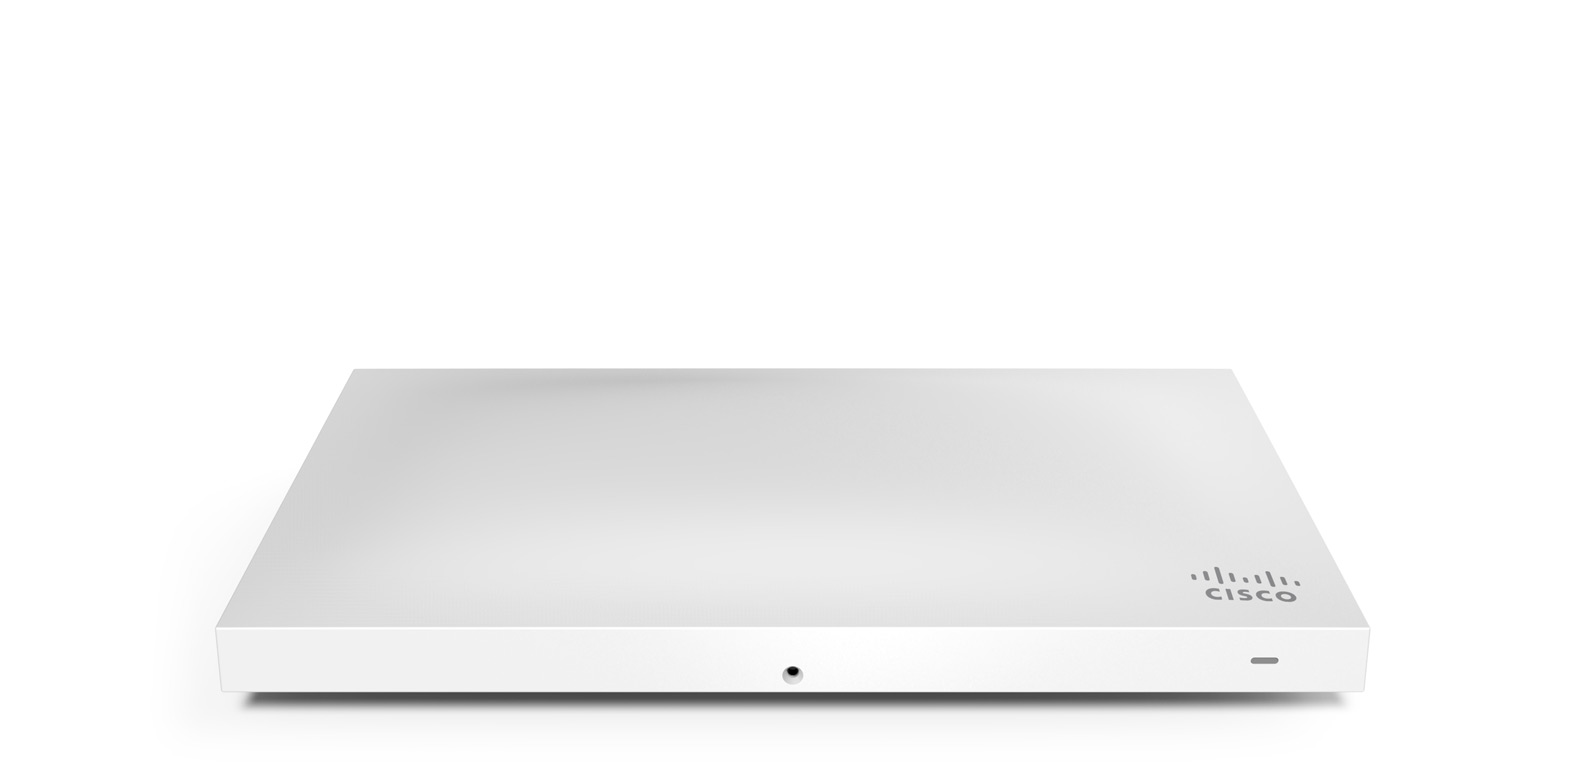 Cisco Meraki M32